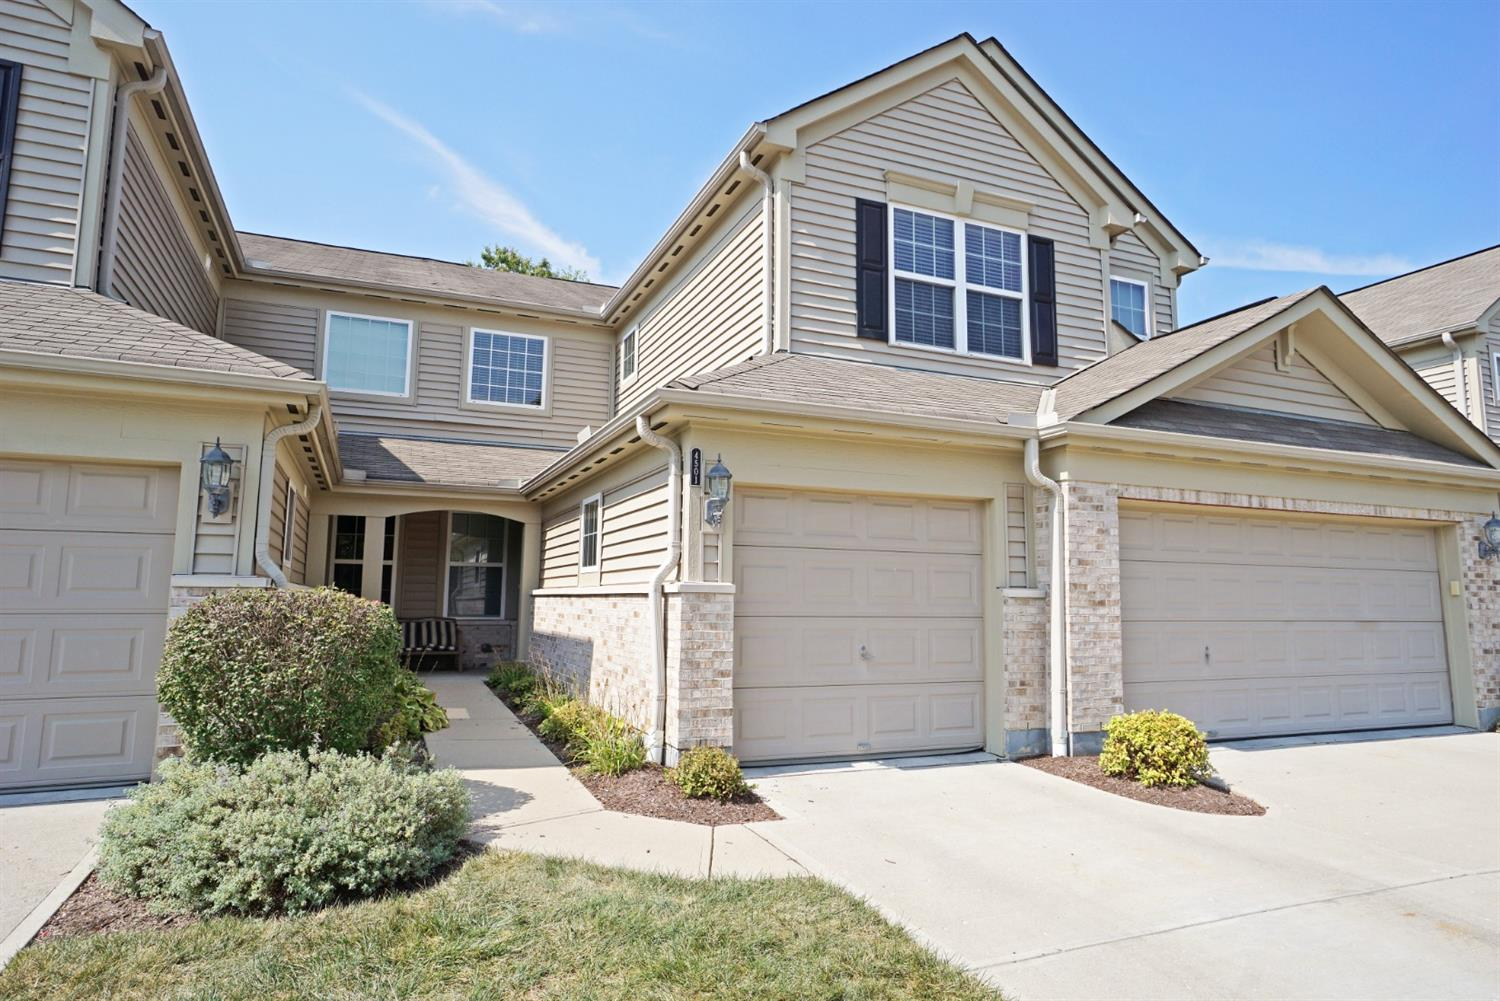 Photo of 4501 English Oak Court, Mason, OH 45040